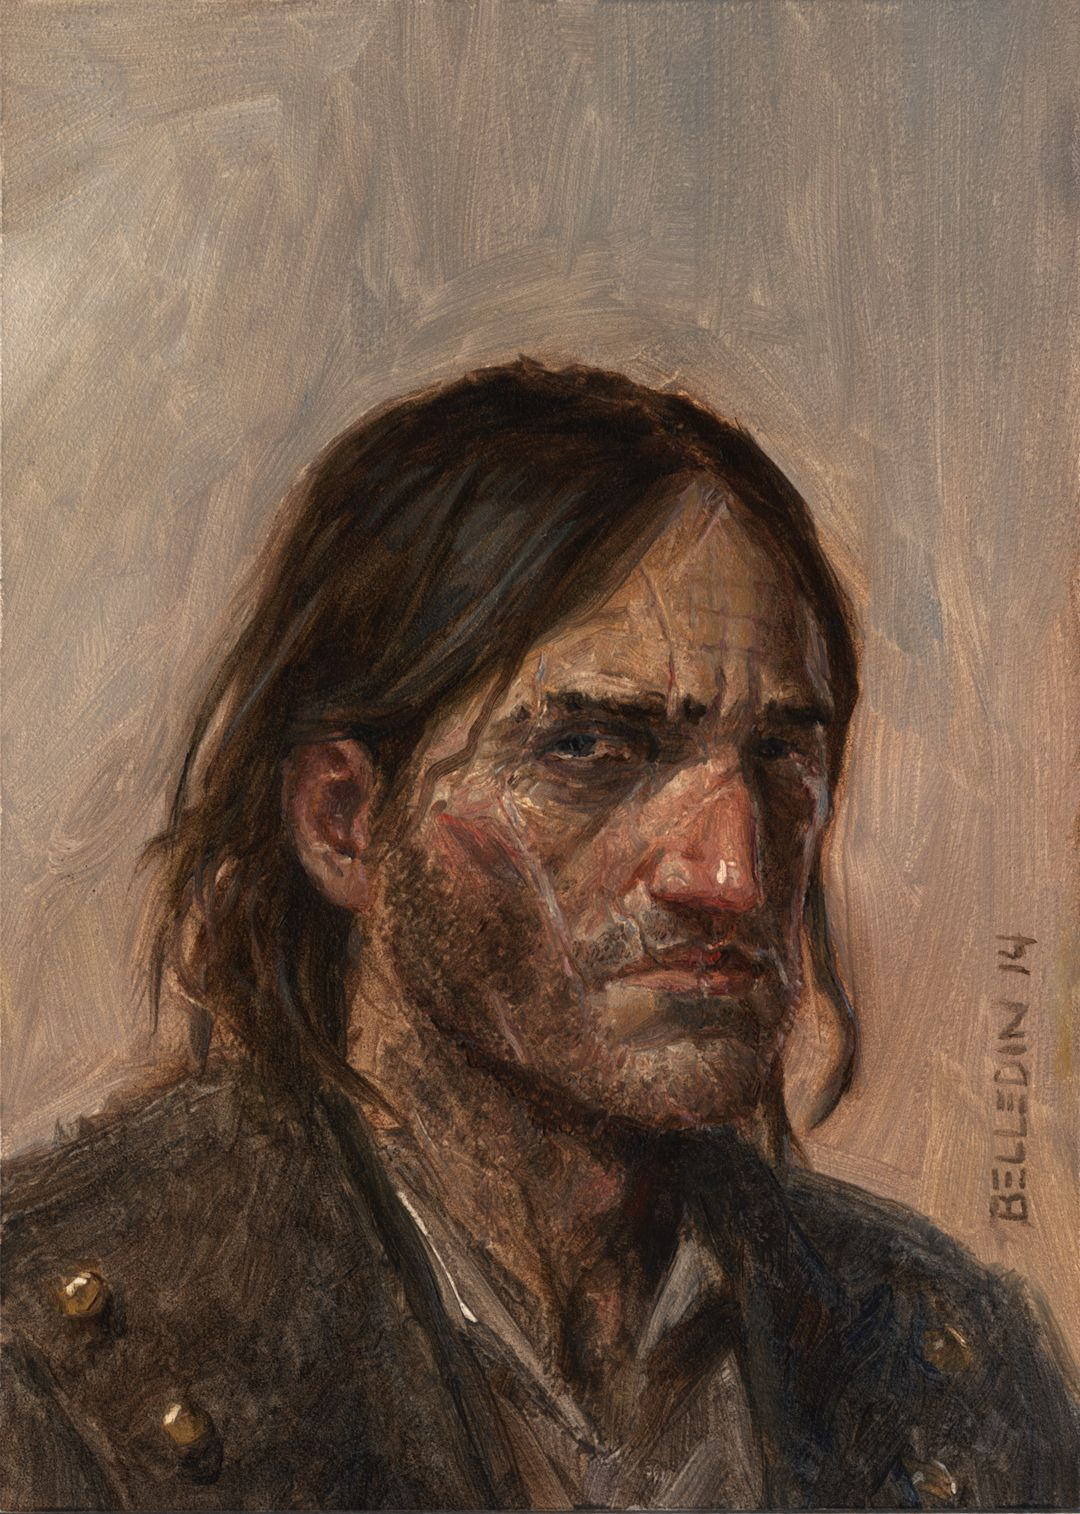 Logen Ninefingers From Joe Abercrombie's, The First Law Trilogy Artist:  Steven Belledin,